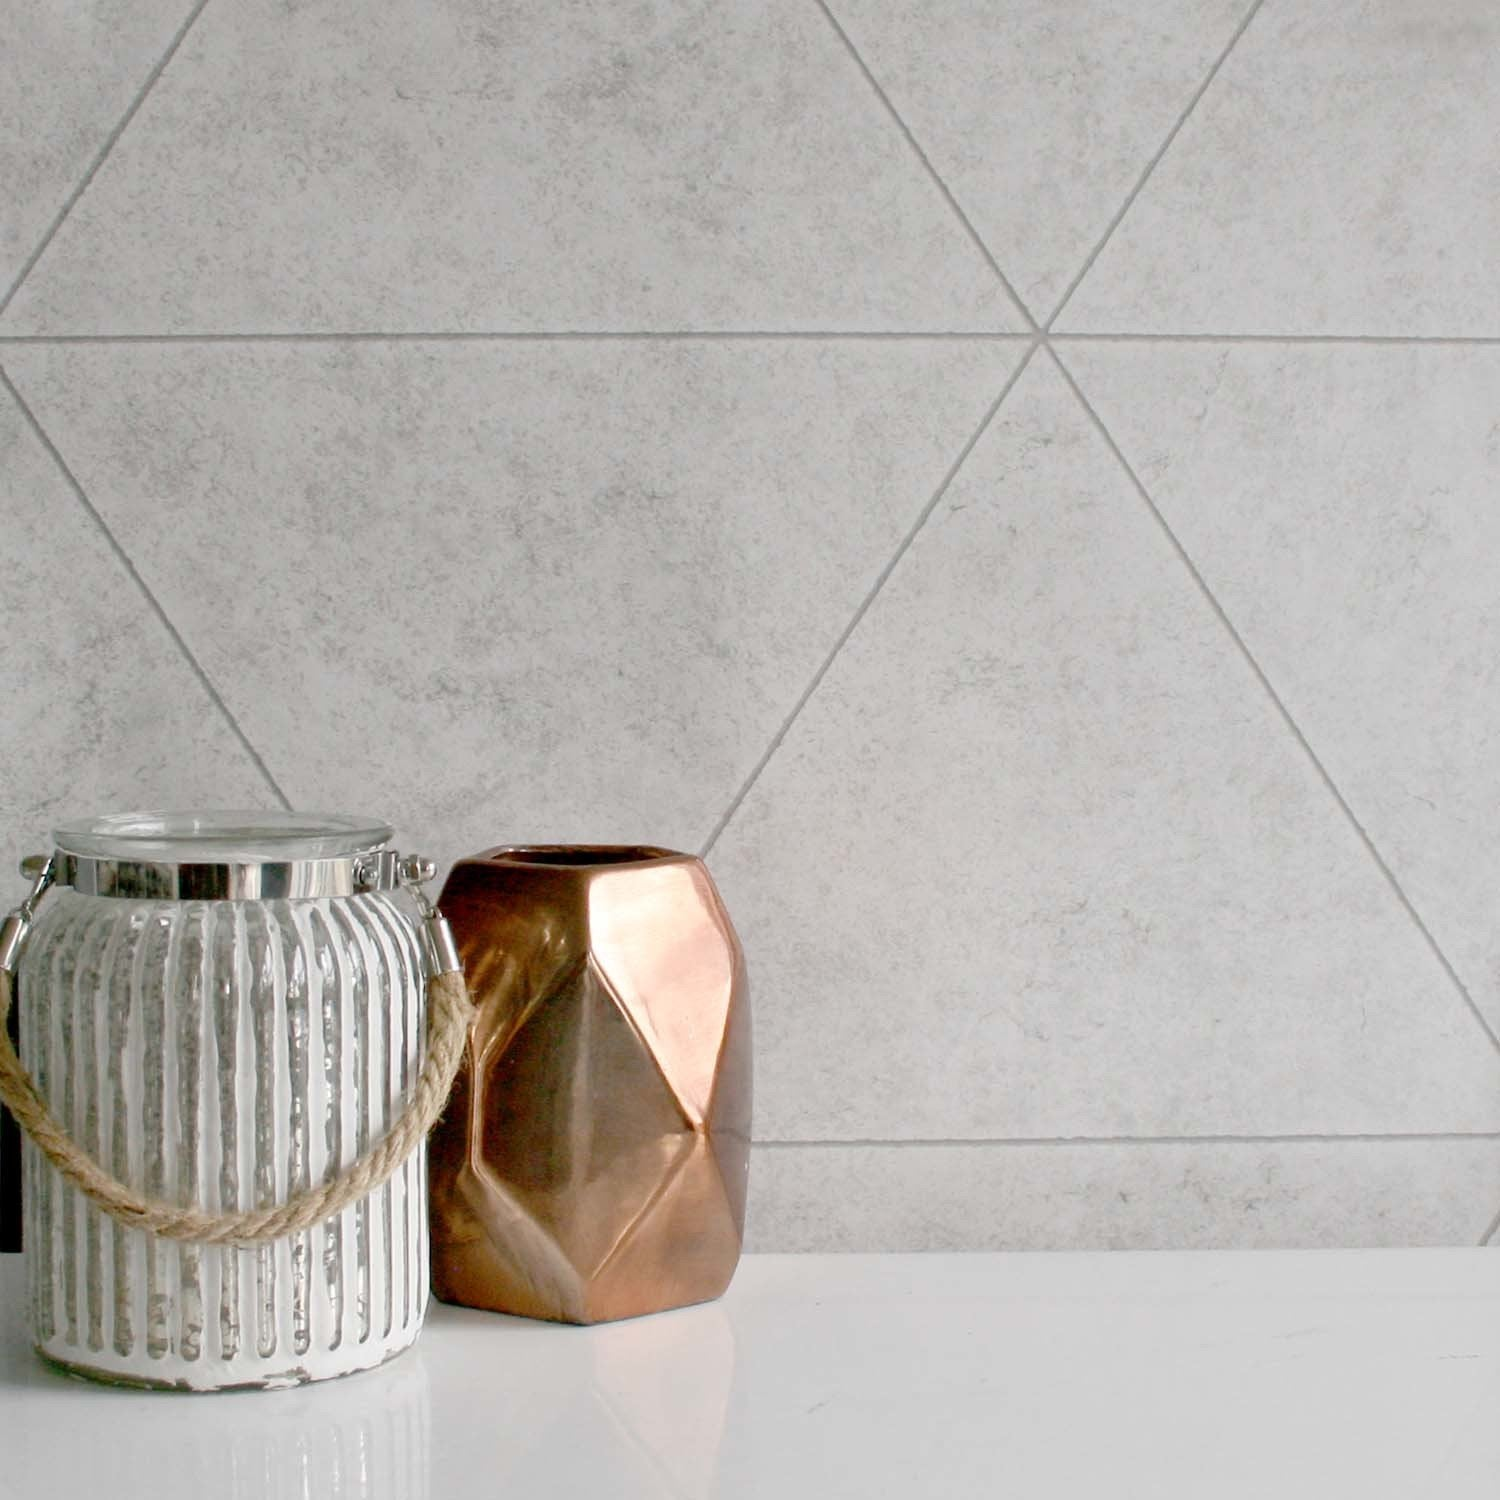 Geometric Triangular Concrete Tile | Light Grey & White